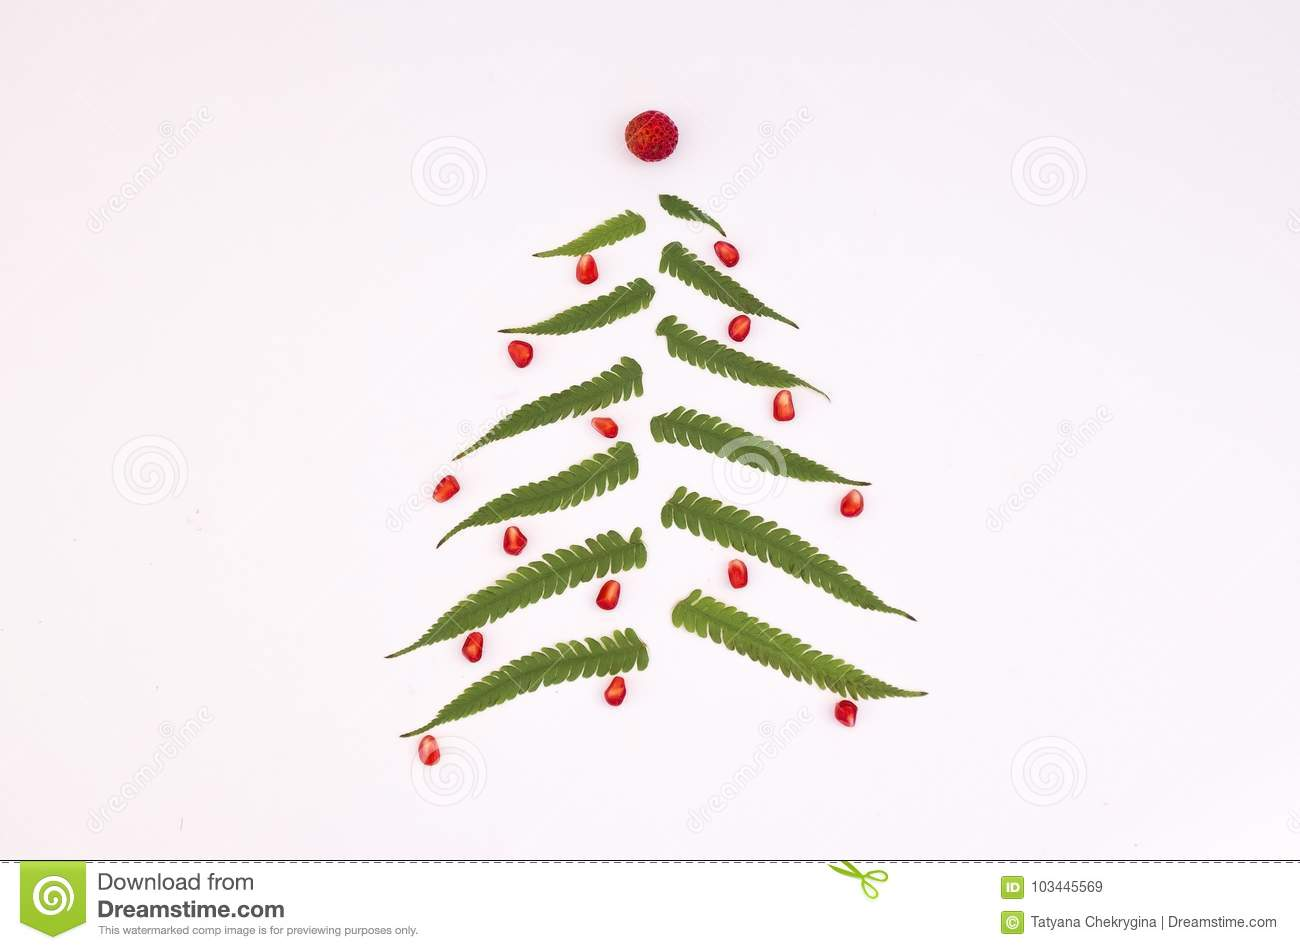 Christmas Tree Made Of Fern Leaves And Berries On White Background